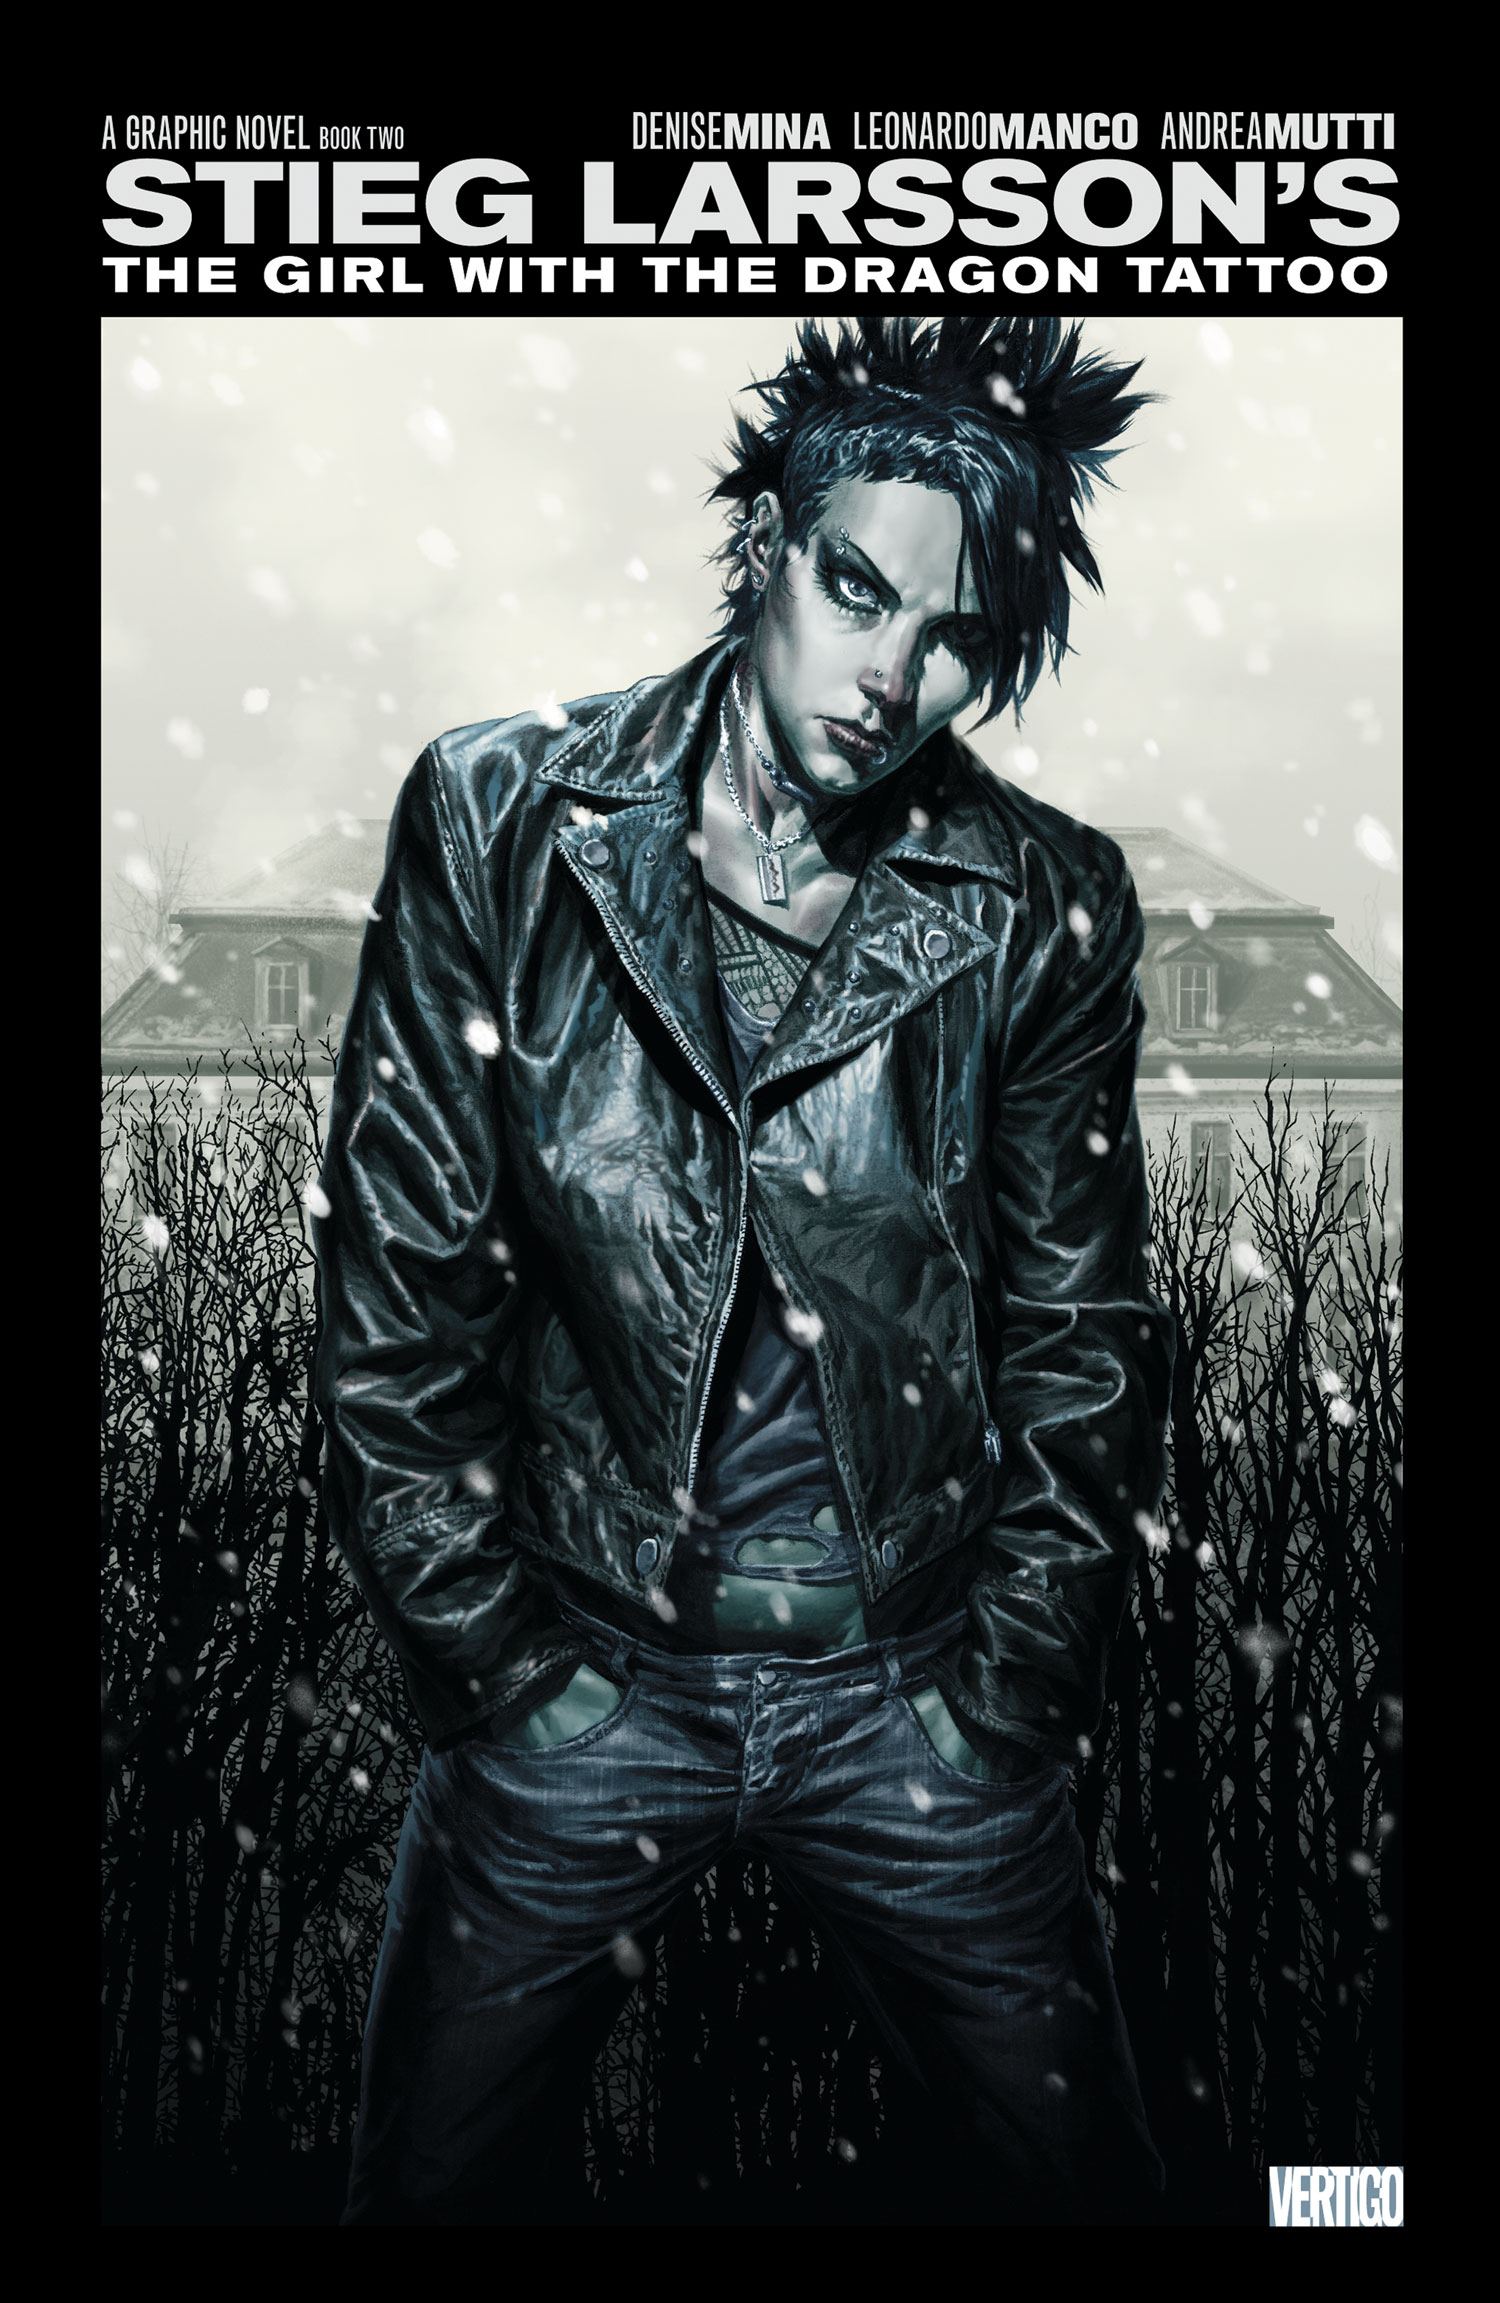 Image stieg larsson 39 s the girl with the dragon tattoo for Girl with dragon tattoo